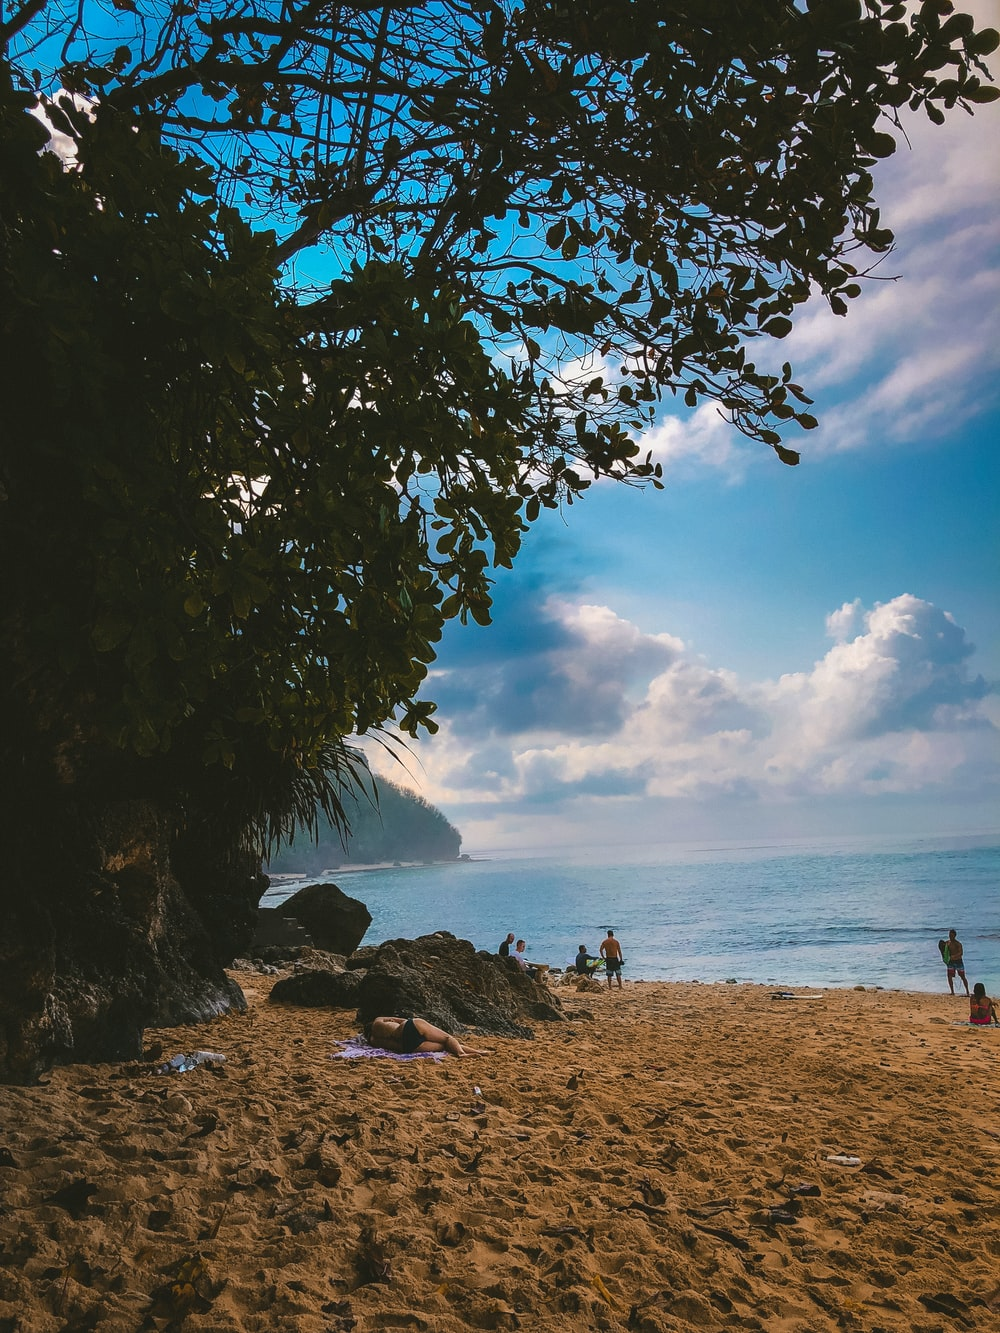 people on shore under blue cloudy sky